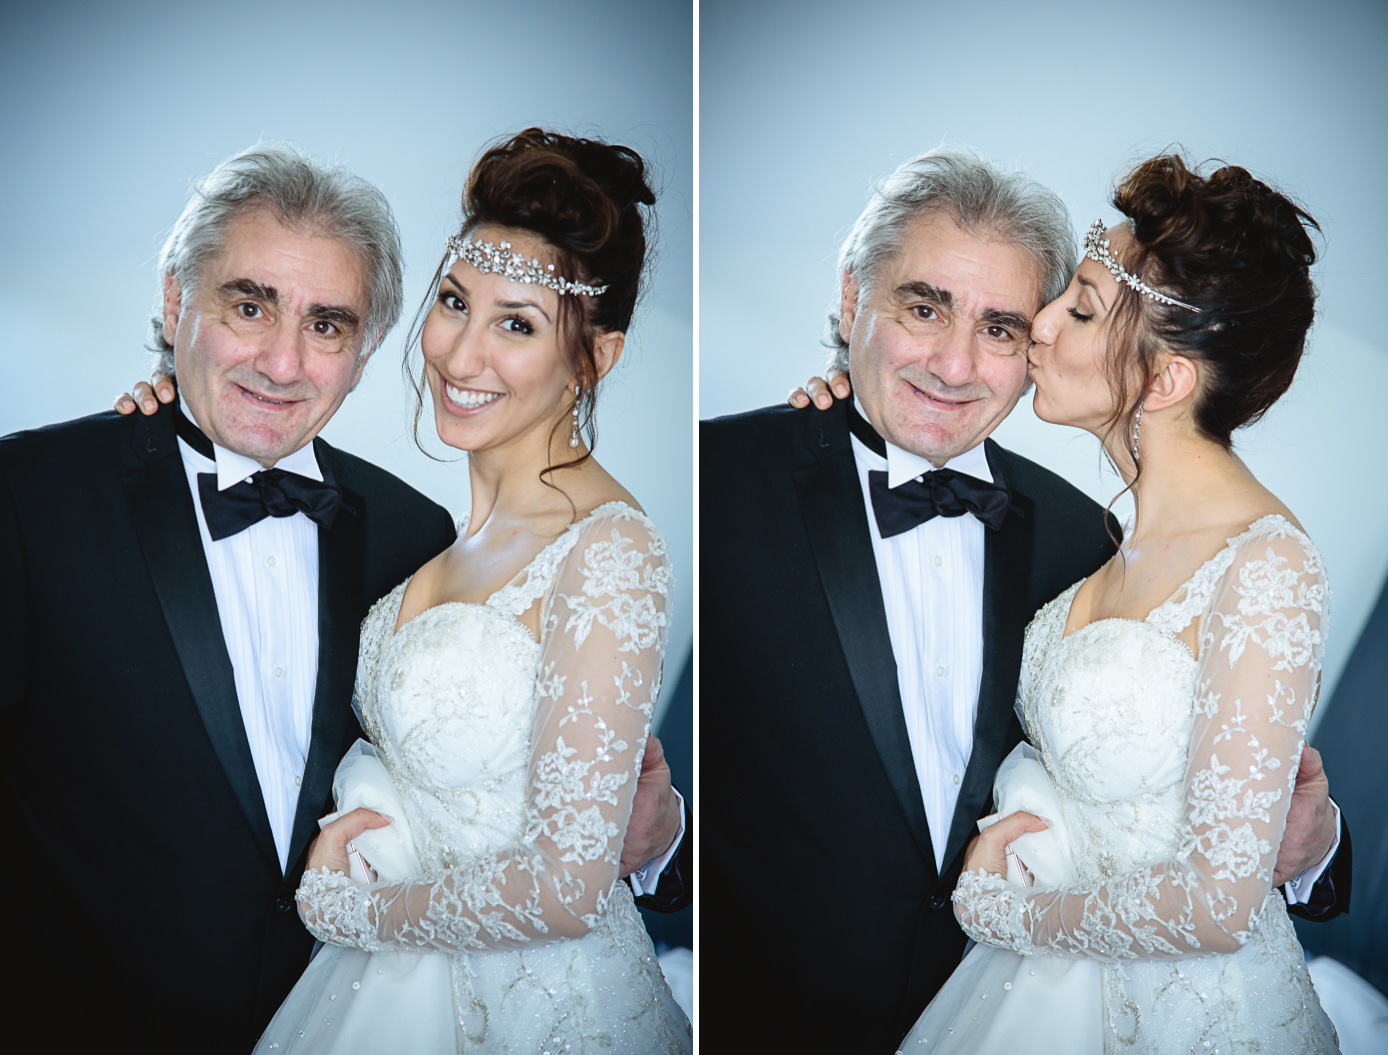 iranian wedding photographer 34 - Drapers Hall London Wedding Photographer